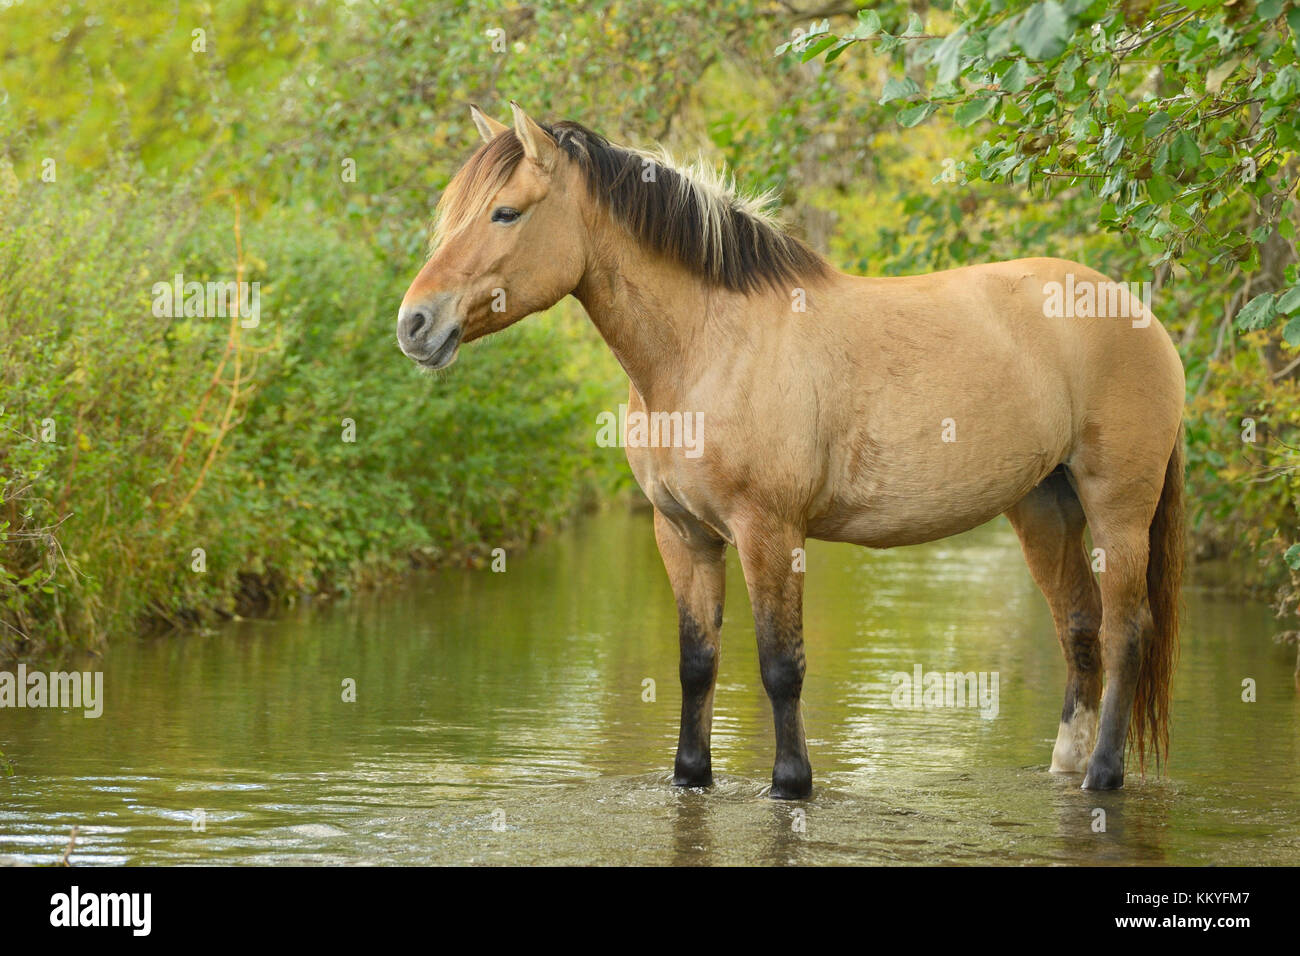 A Norwegian Fjord Horse High Resolution Stock Photography And Images Alamy